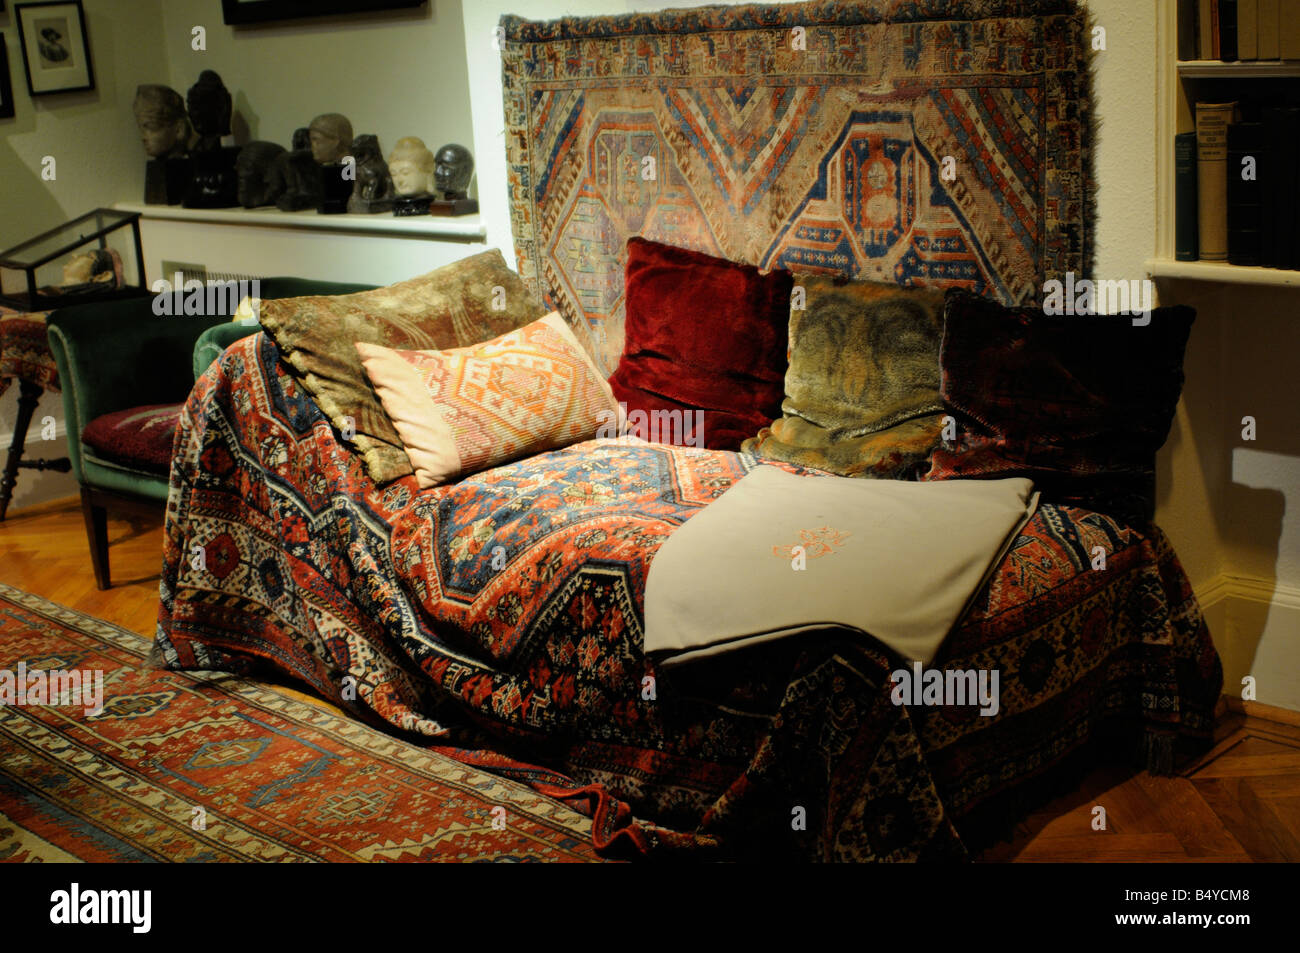 The famous couch in the Freud's Museum in London - Stock Image